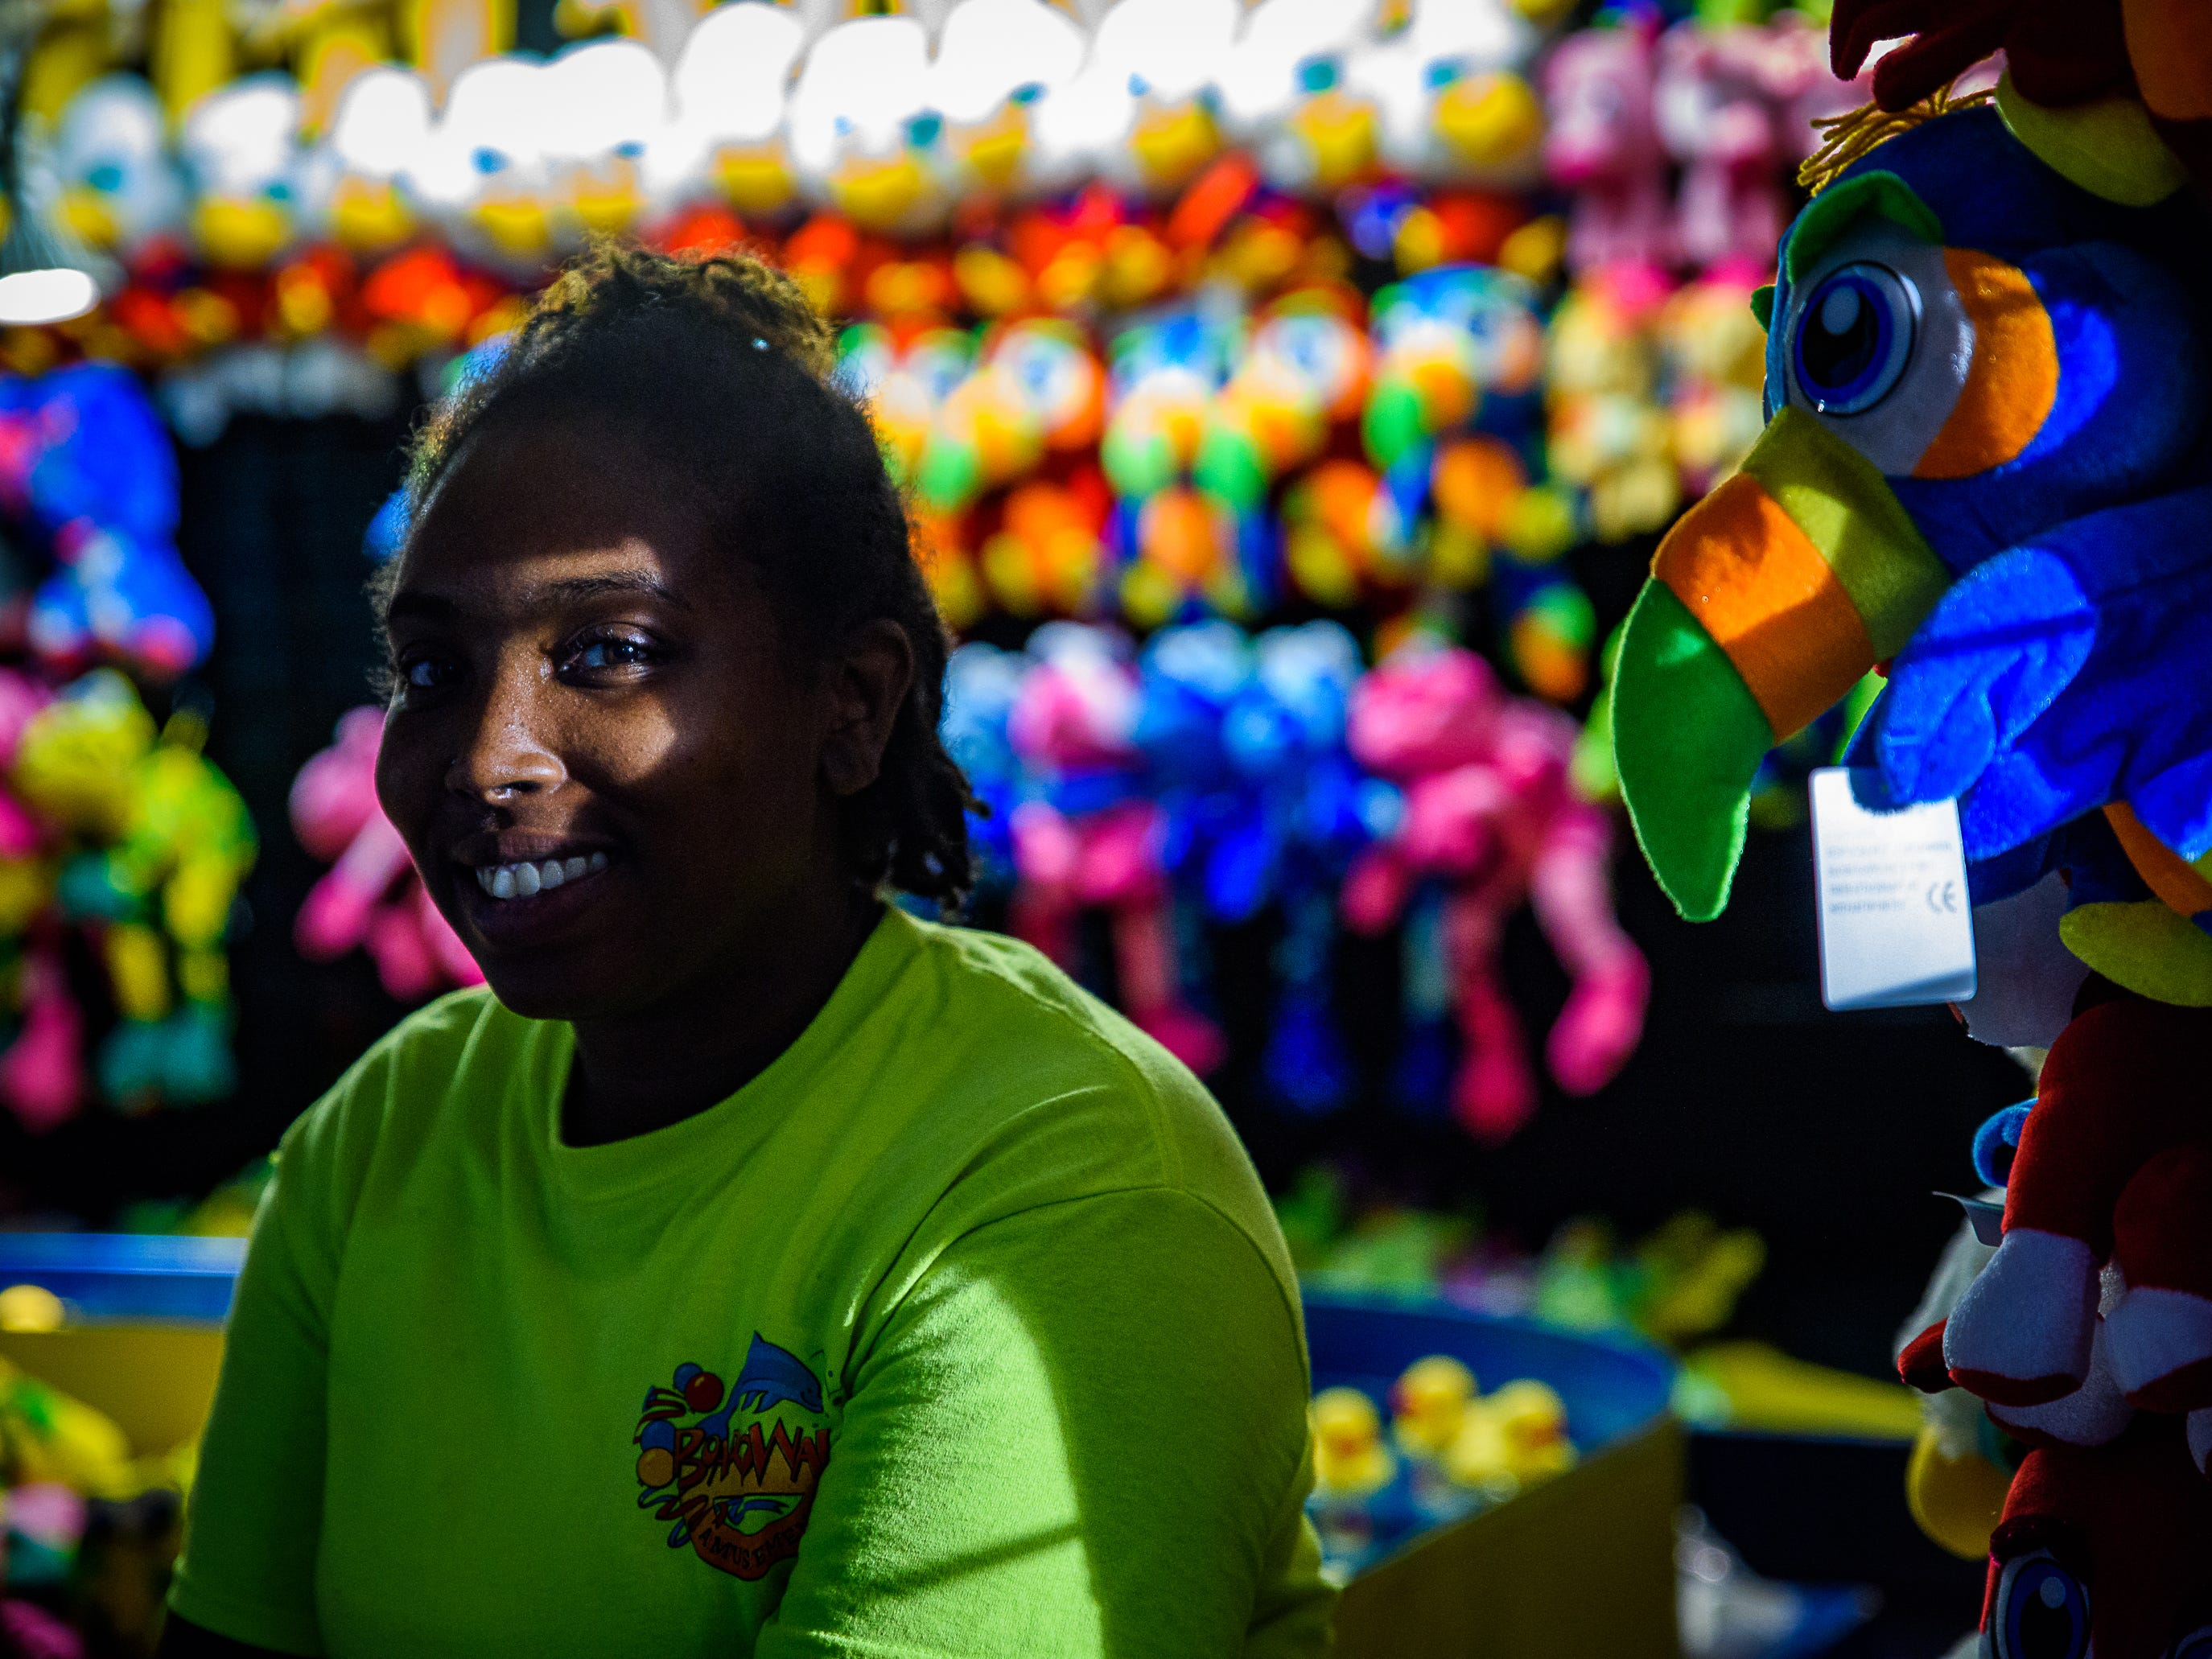 A volunteer stands in front of a wall of prizes at one of the several game booths at the Chincoteague Fireman's Carnival.